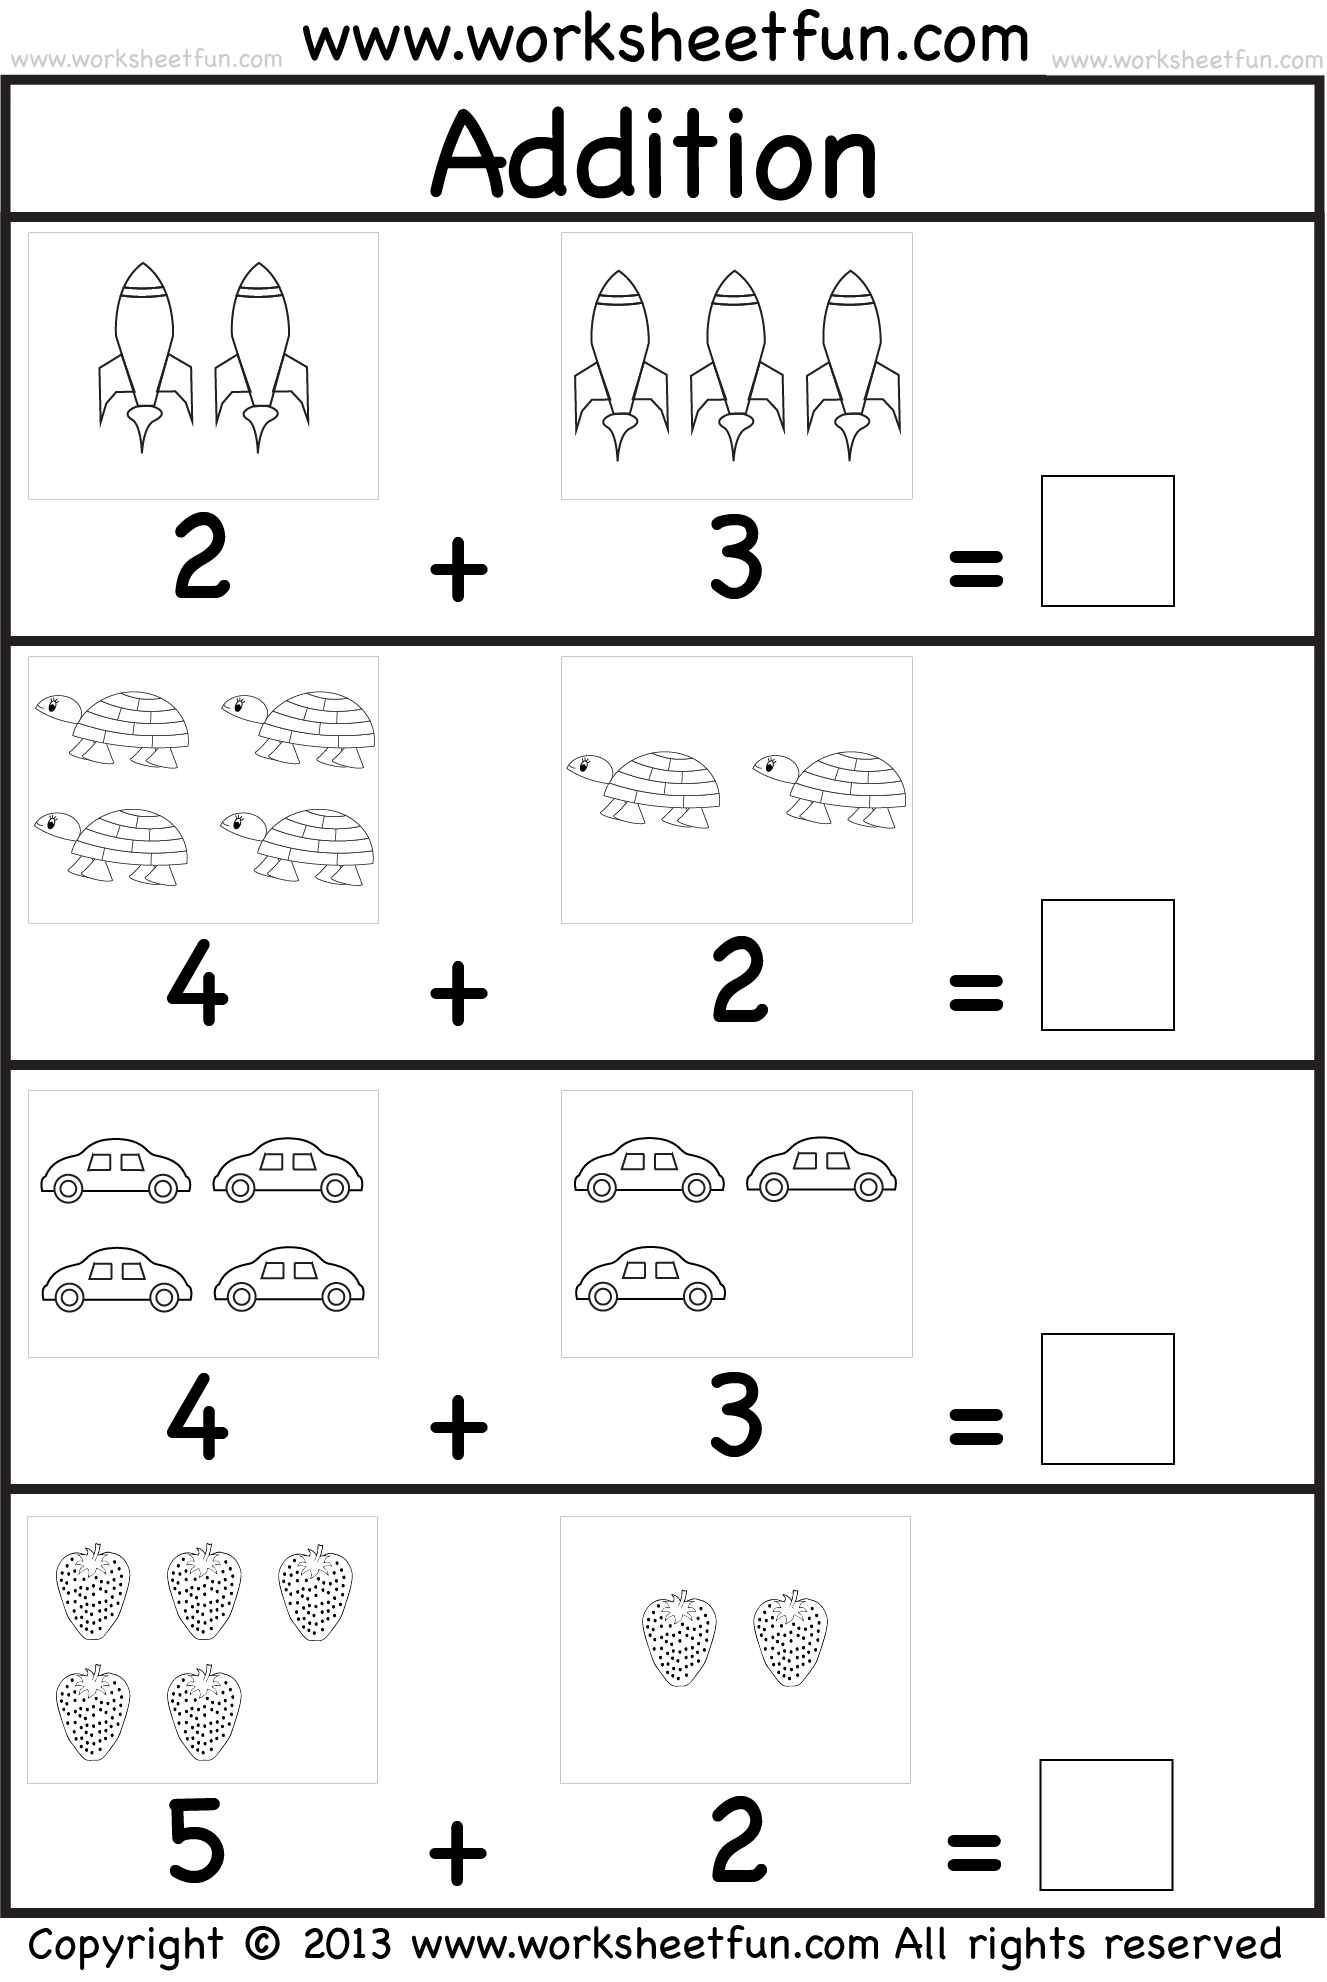 addition worksheet this site has great free worksheets for everything from abcs to - Fun Printable Worksheets For Kids